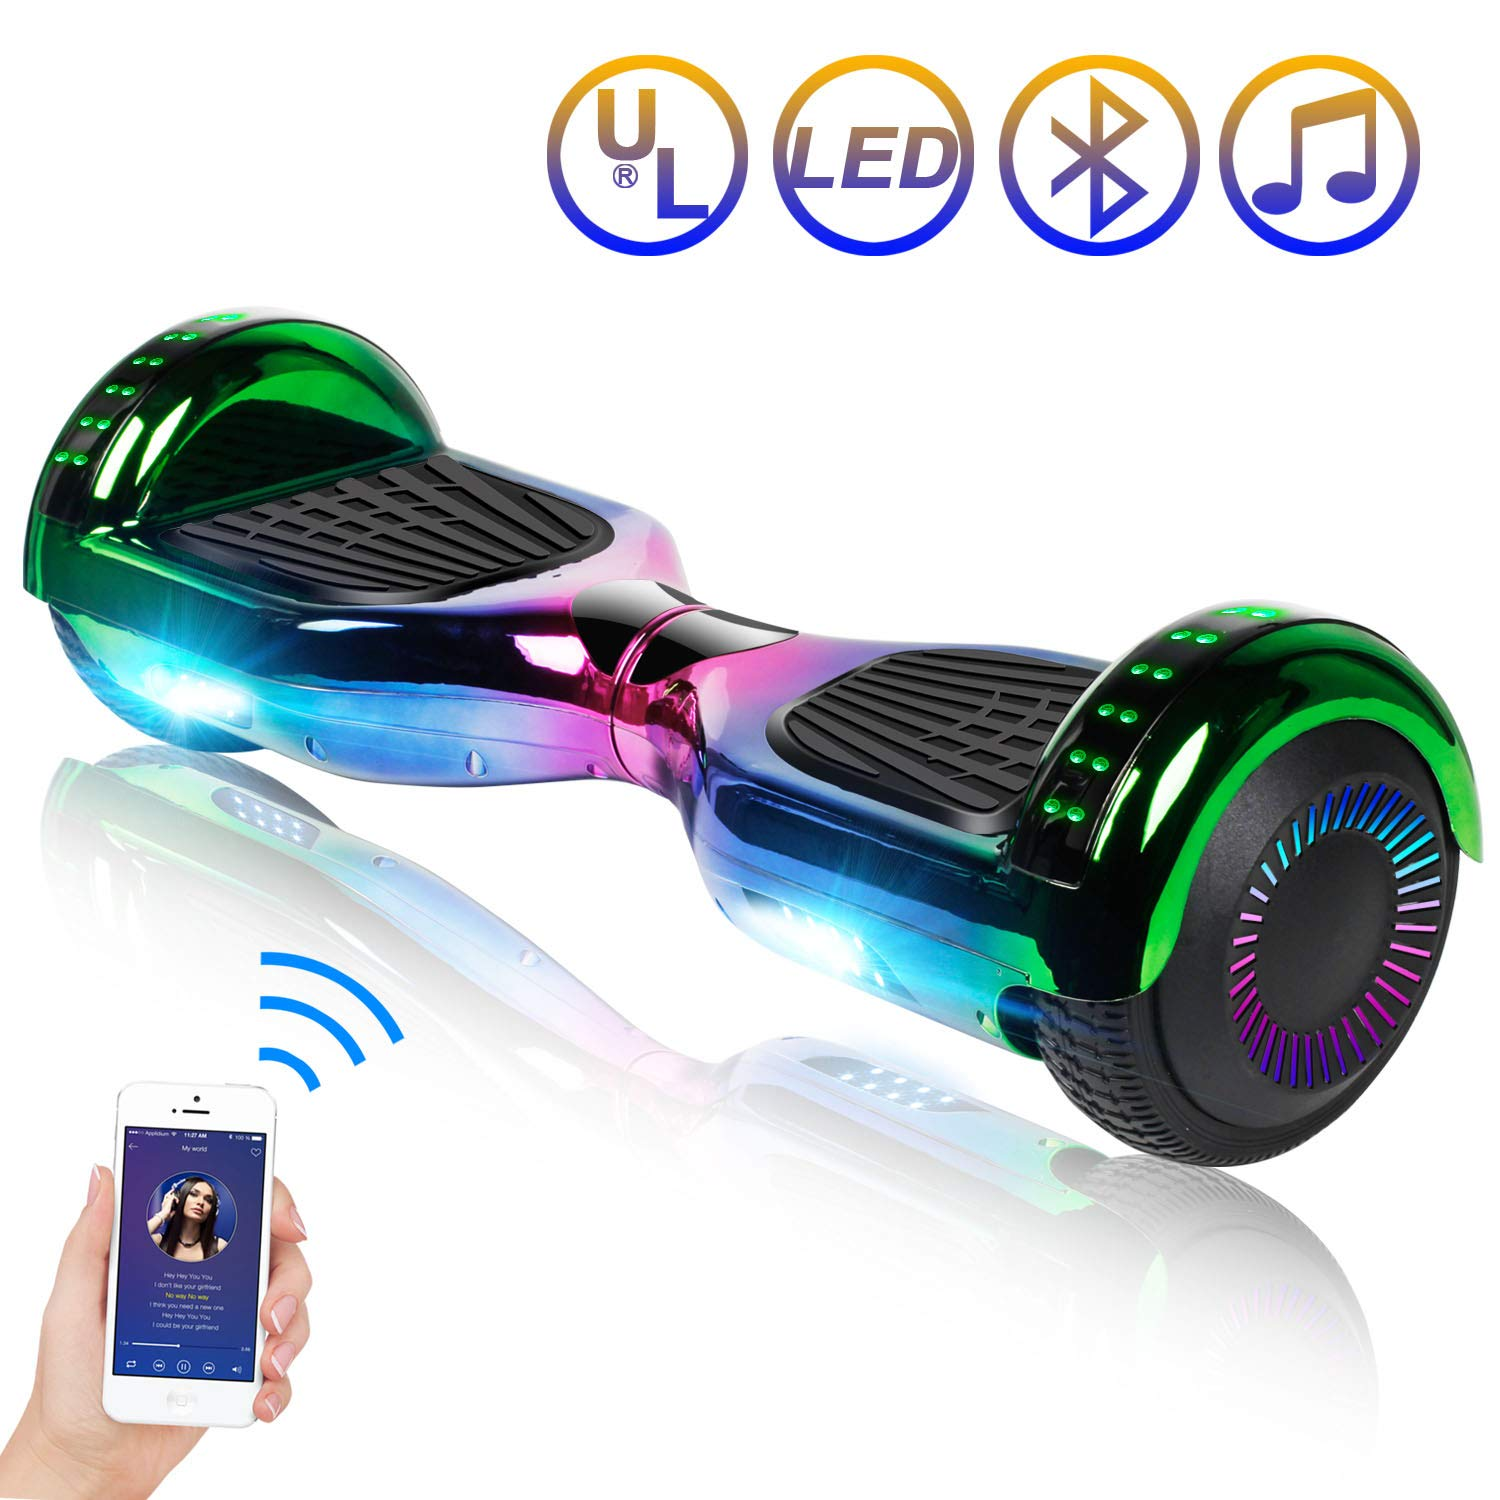 Hoverboard Self Balancing Scooter 6.5'' Two-Wheel Self Balancing Hoverboard with Bluetooth Speaker and LED Lights Electric Scooter for Adult Kids Gift UL 2272 Certified Plating Dazzle Series - Chrome by SISIGAD